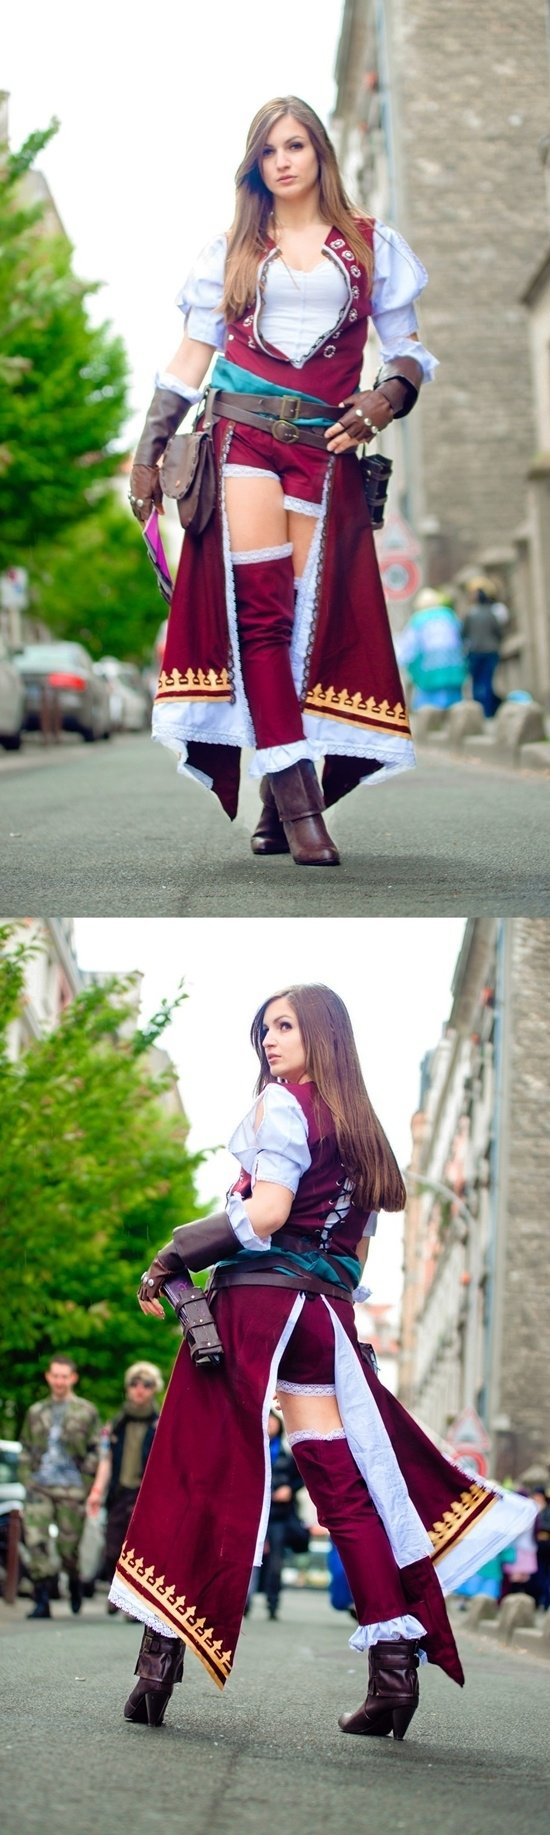 10 Cute Easy Cosplay Ideas For Girls 25 ultimate cosplay ideas for girls 2021